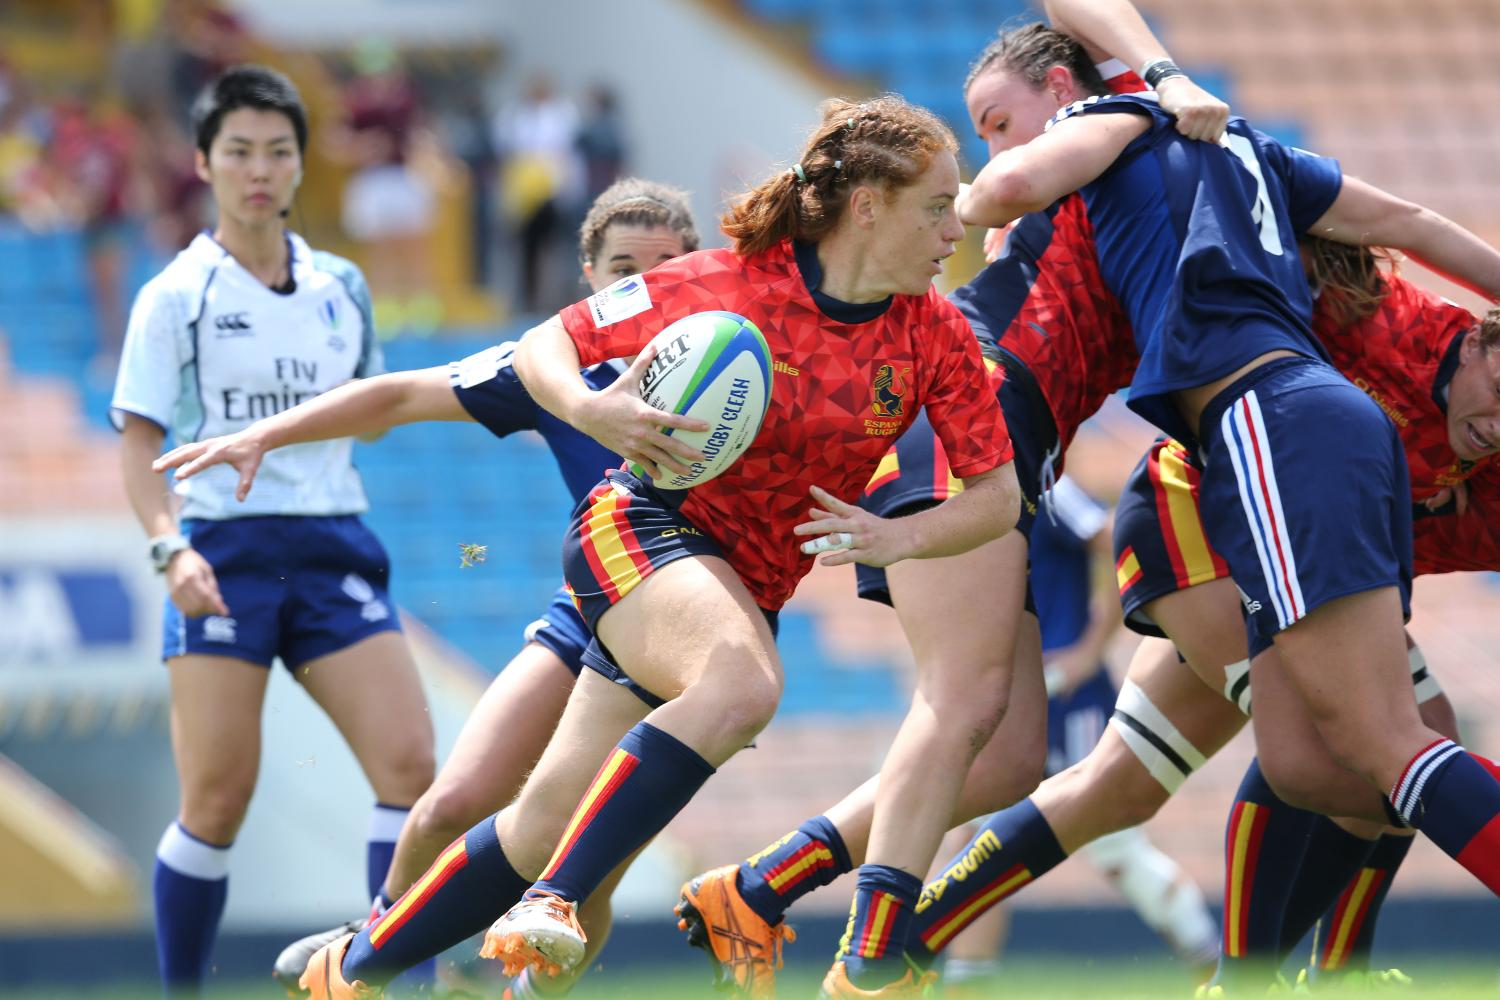 Barbara Pla, Spanish player, in action against France on day one at Brazil 7s